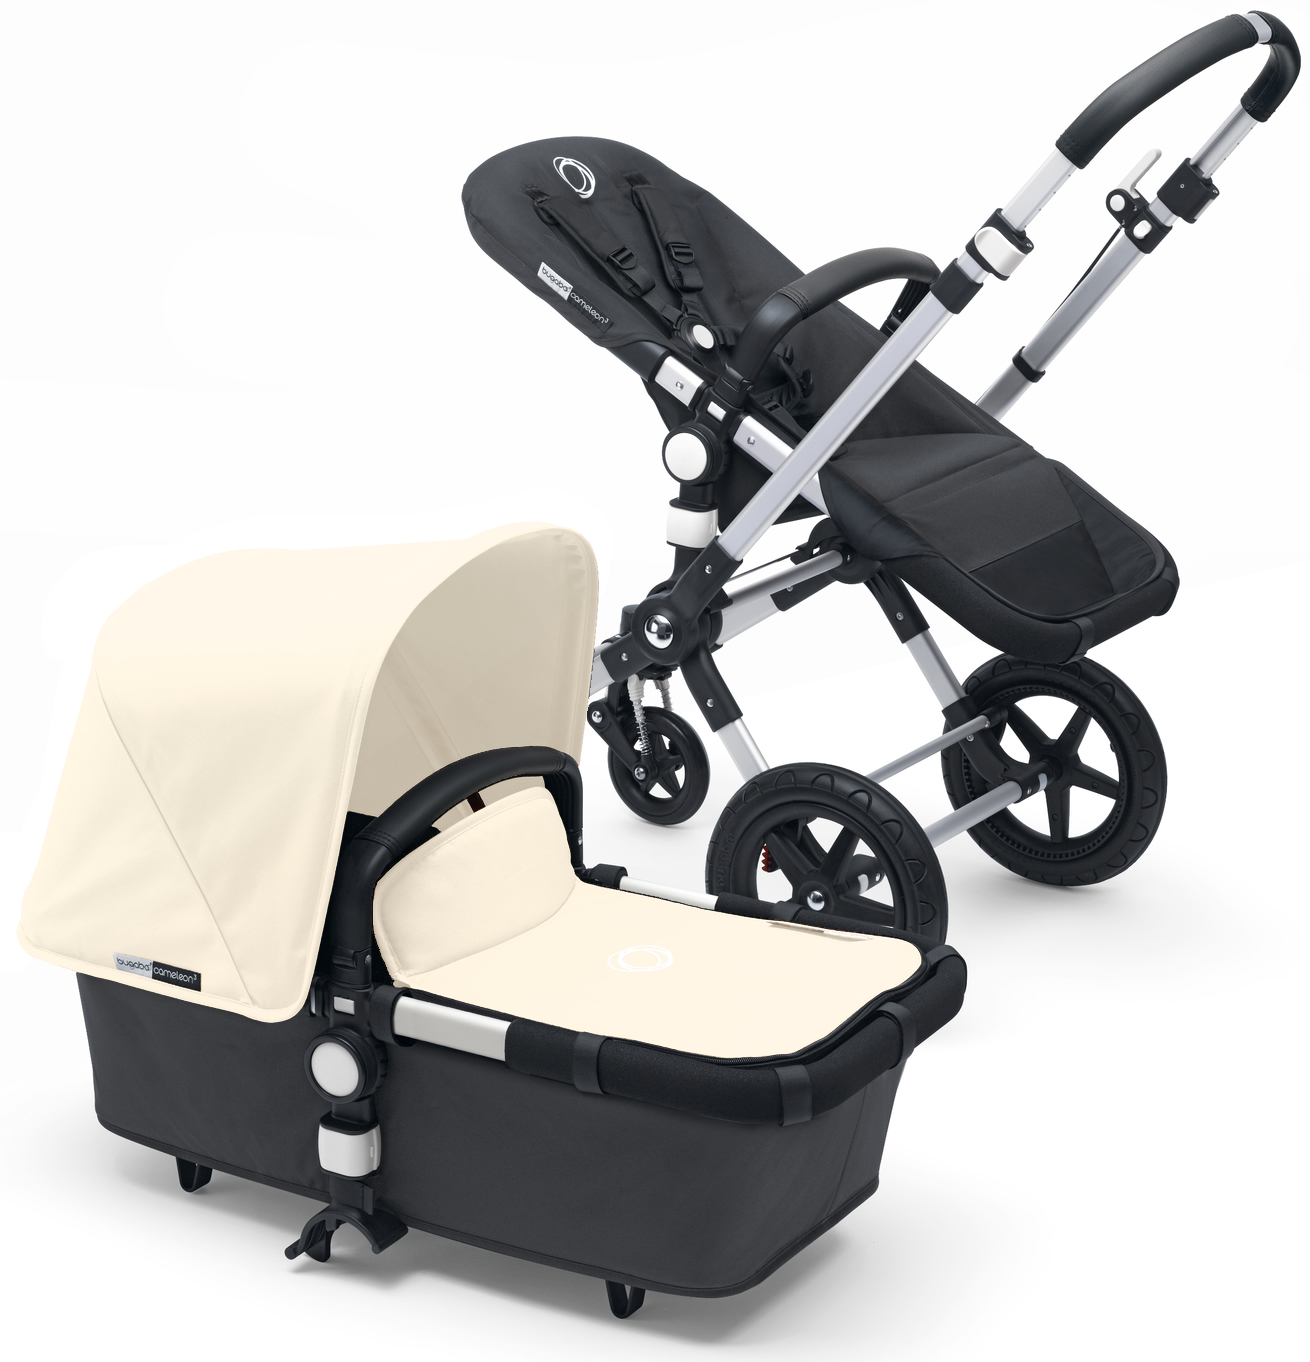 Bugaboo Cameleon 3 Stroller - Dark Grey/Off White